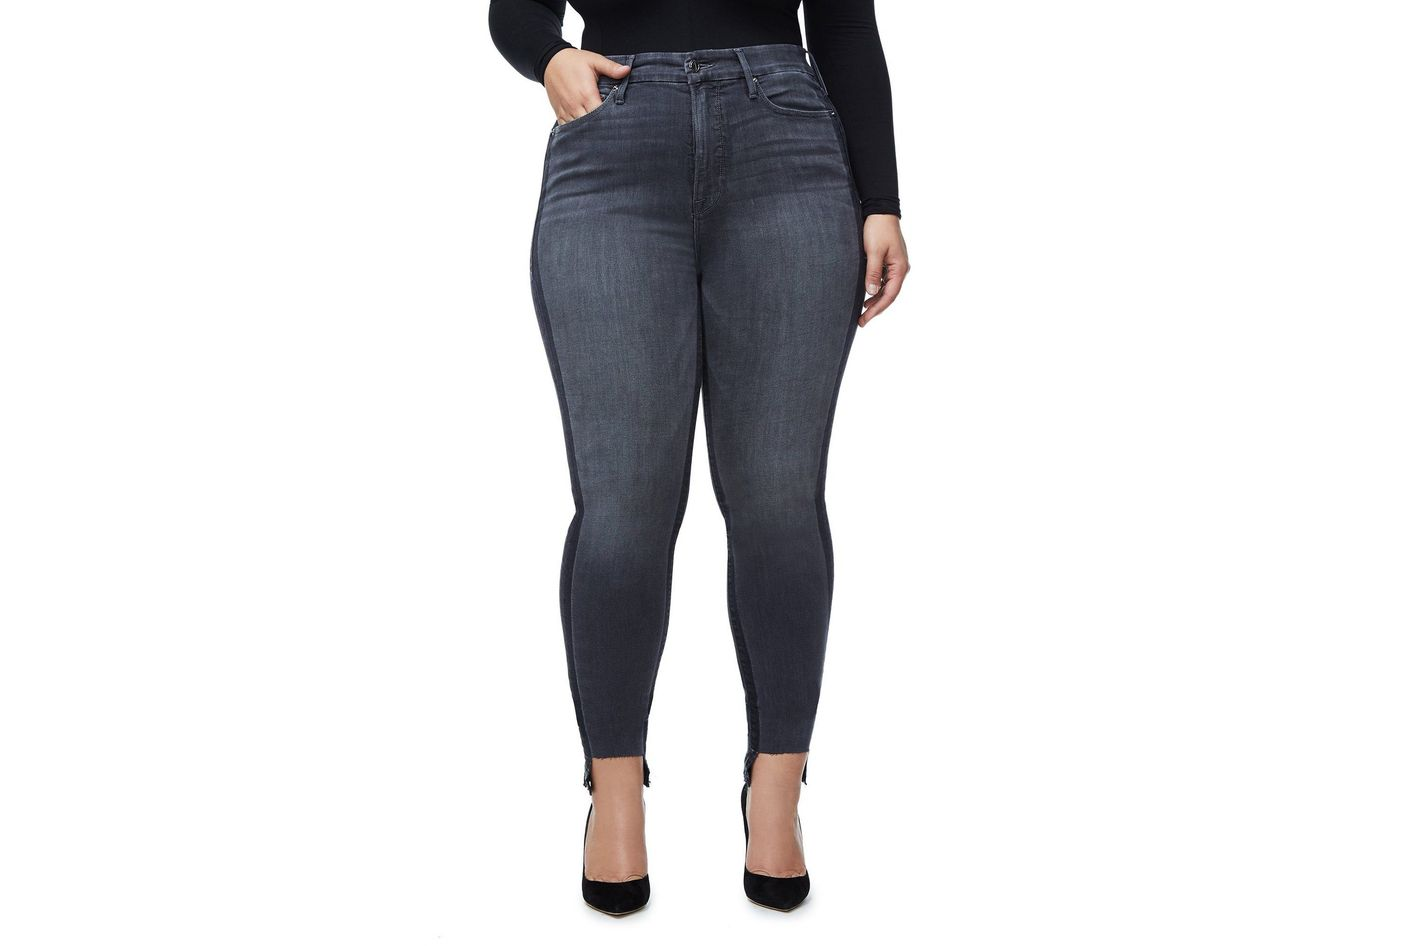 9ad2edef19 10 Best Plus-Size Jeans According to Real Women 2018